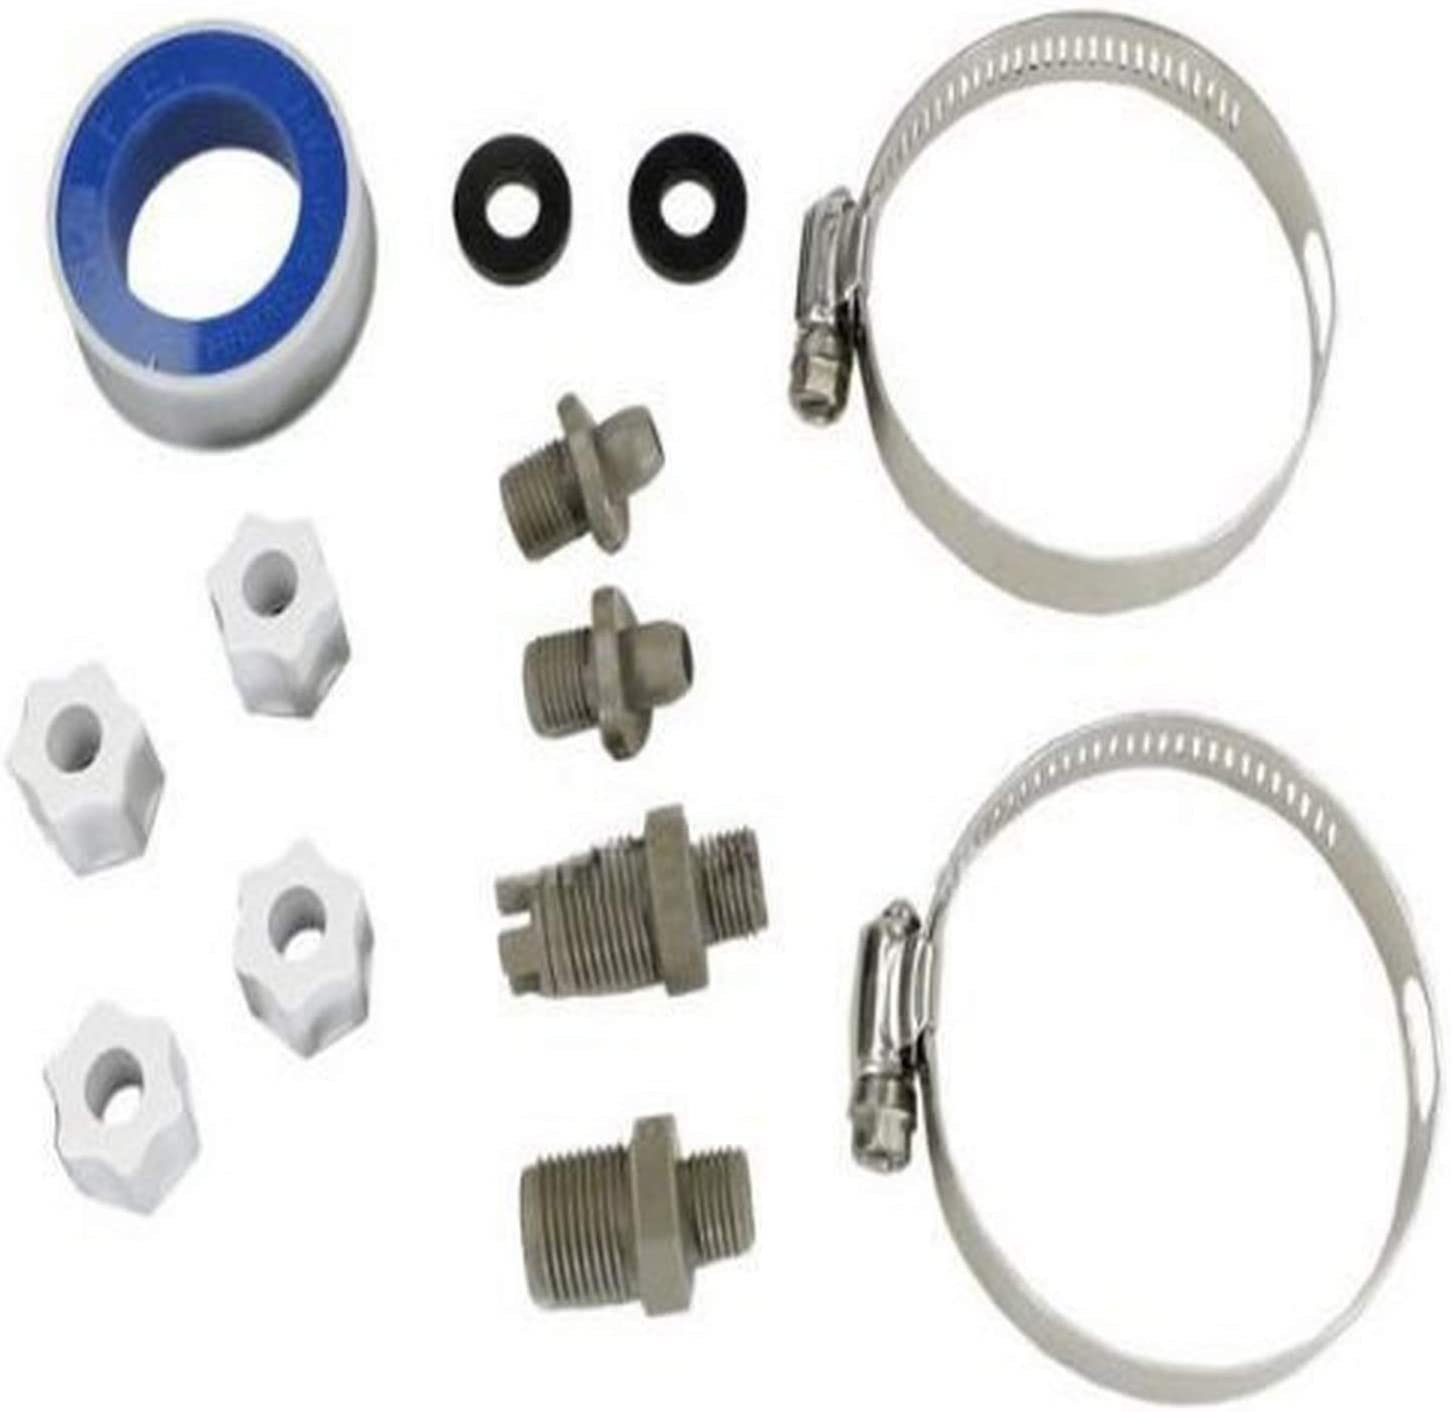 Hayward CLX220PAK Accessory Pack Replacement for Hayward Chlorine and Bromine Chemical Feeder